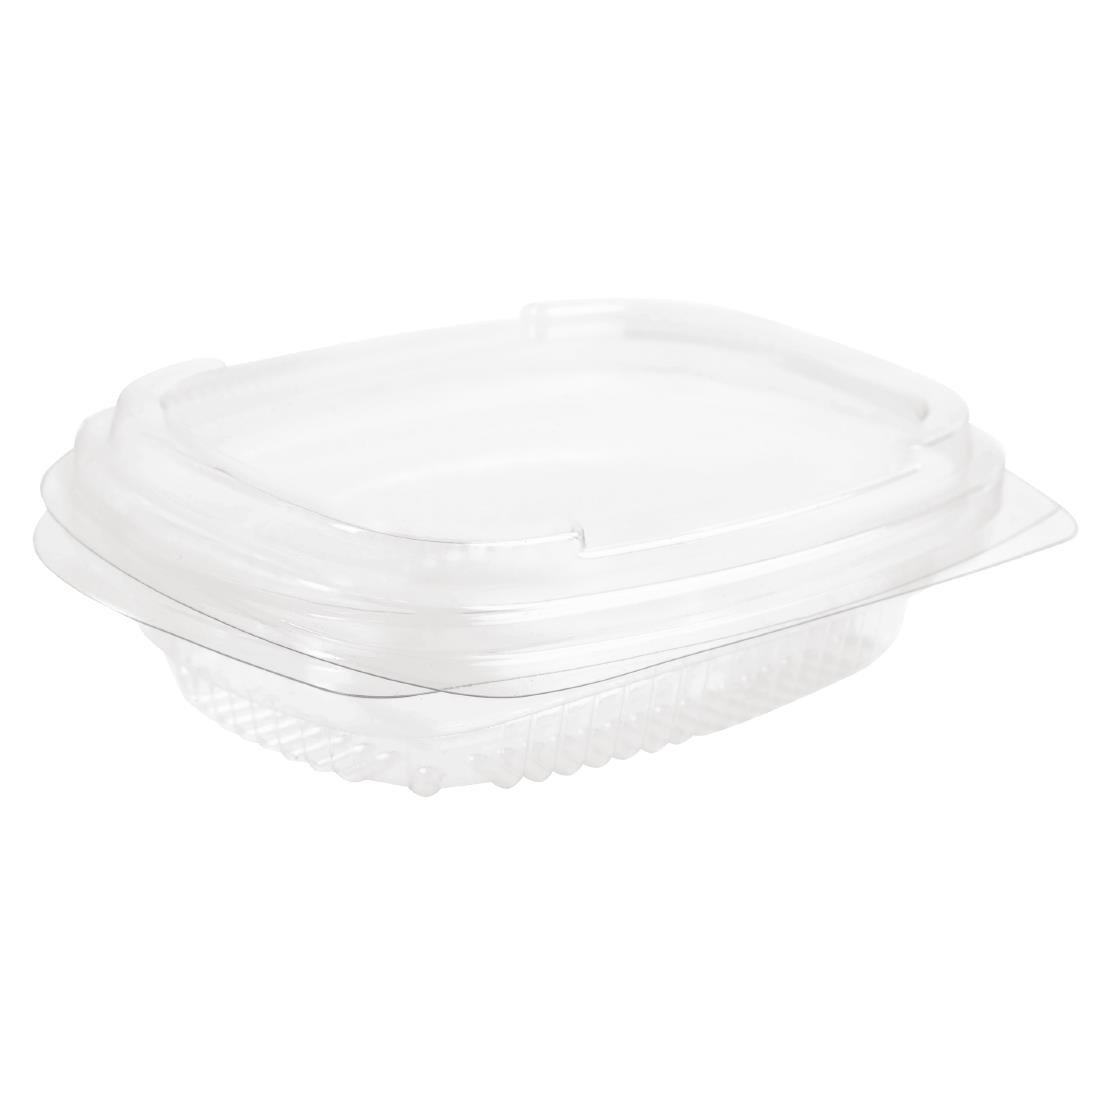 Faerch Fresco Recyclable Deli Containers With Lid 125ml / 4oz